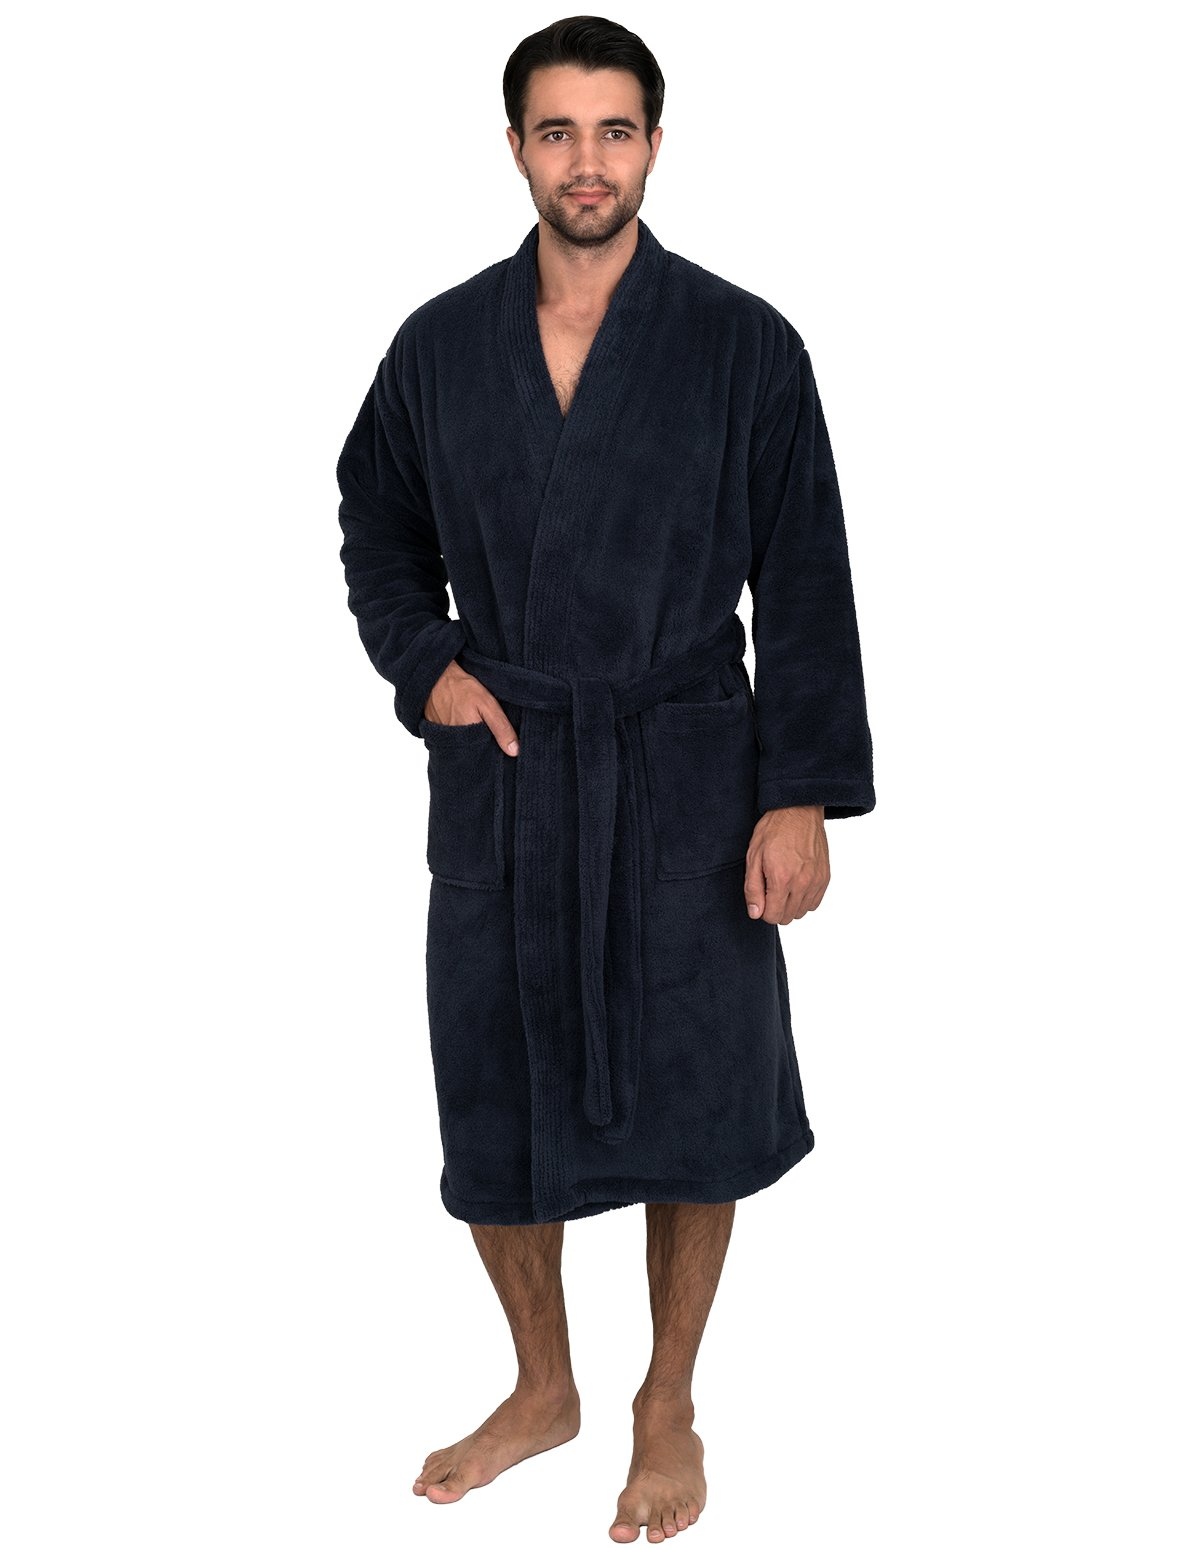 efaf55b2d8 TowelSelections Men s Plush Spa Robe Fleece Kimono Bathrobe Made in Turkey  product image